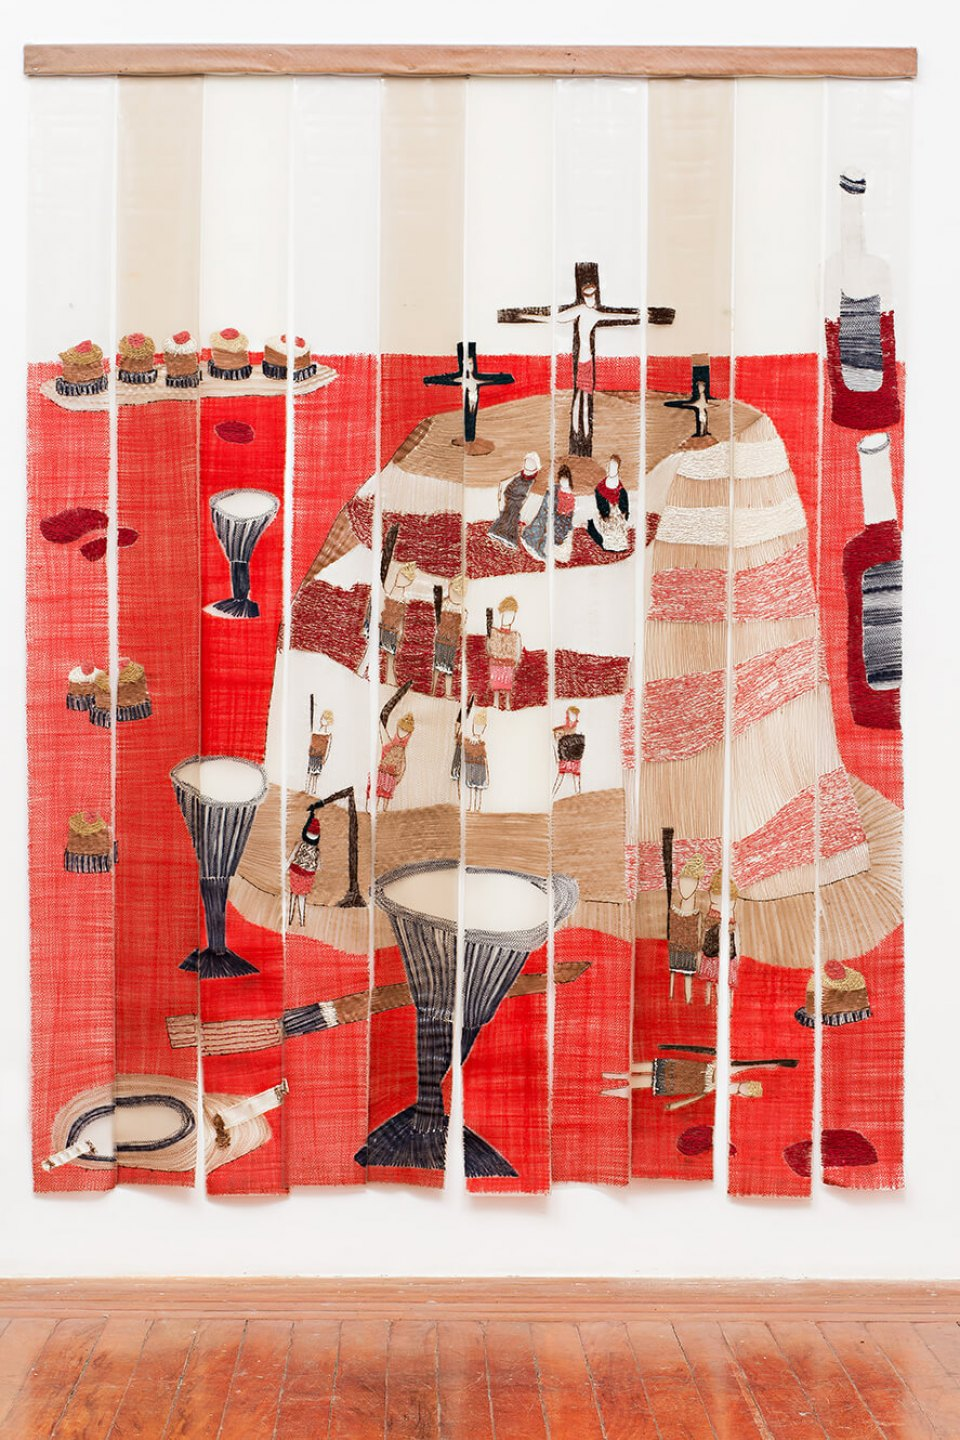 f. marquespeteado, <em>Bolo de Sorvete Napolitano com Calvário</em>, 2006, PVC fringe hand embroidered and sewing machine forming a curtain, 2,22 × 180 m - Mendes Wood DM